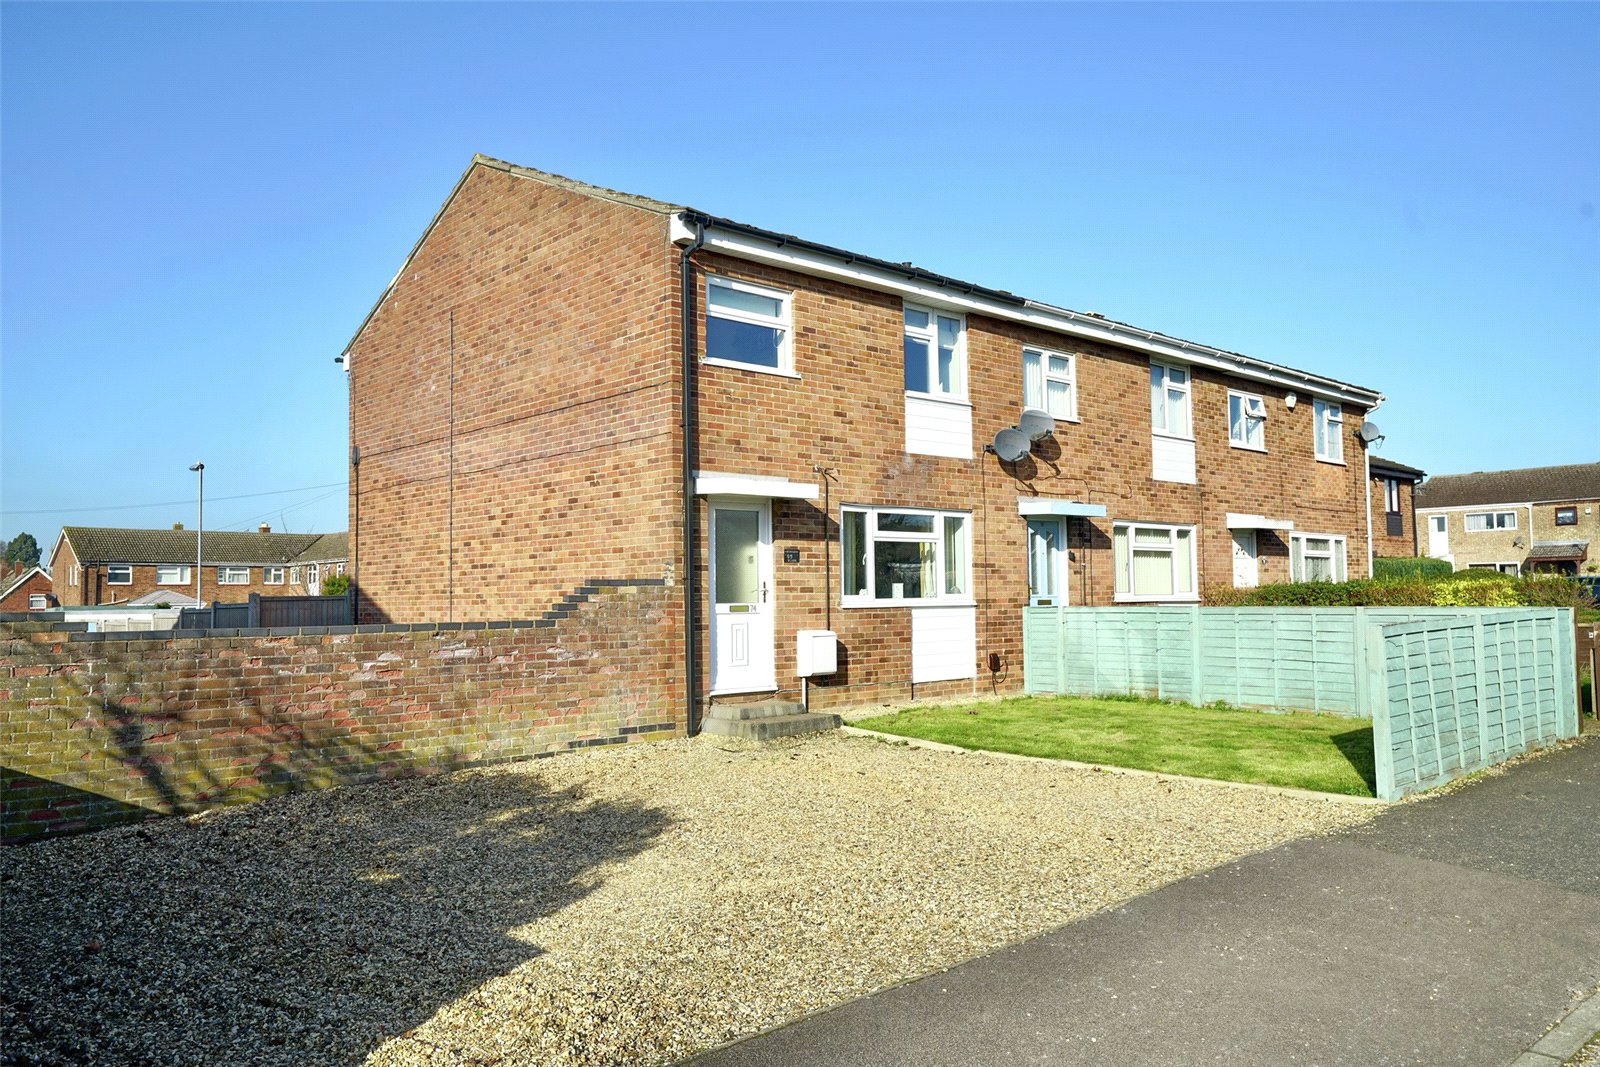 3 bed house for sale in Henbrook, St. Neots  - Property Image 6